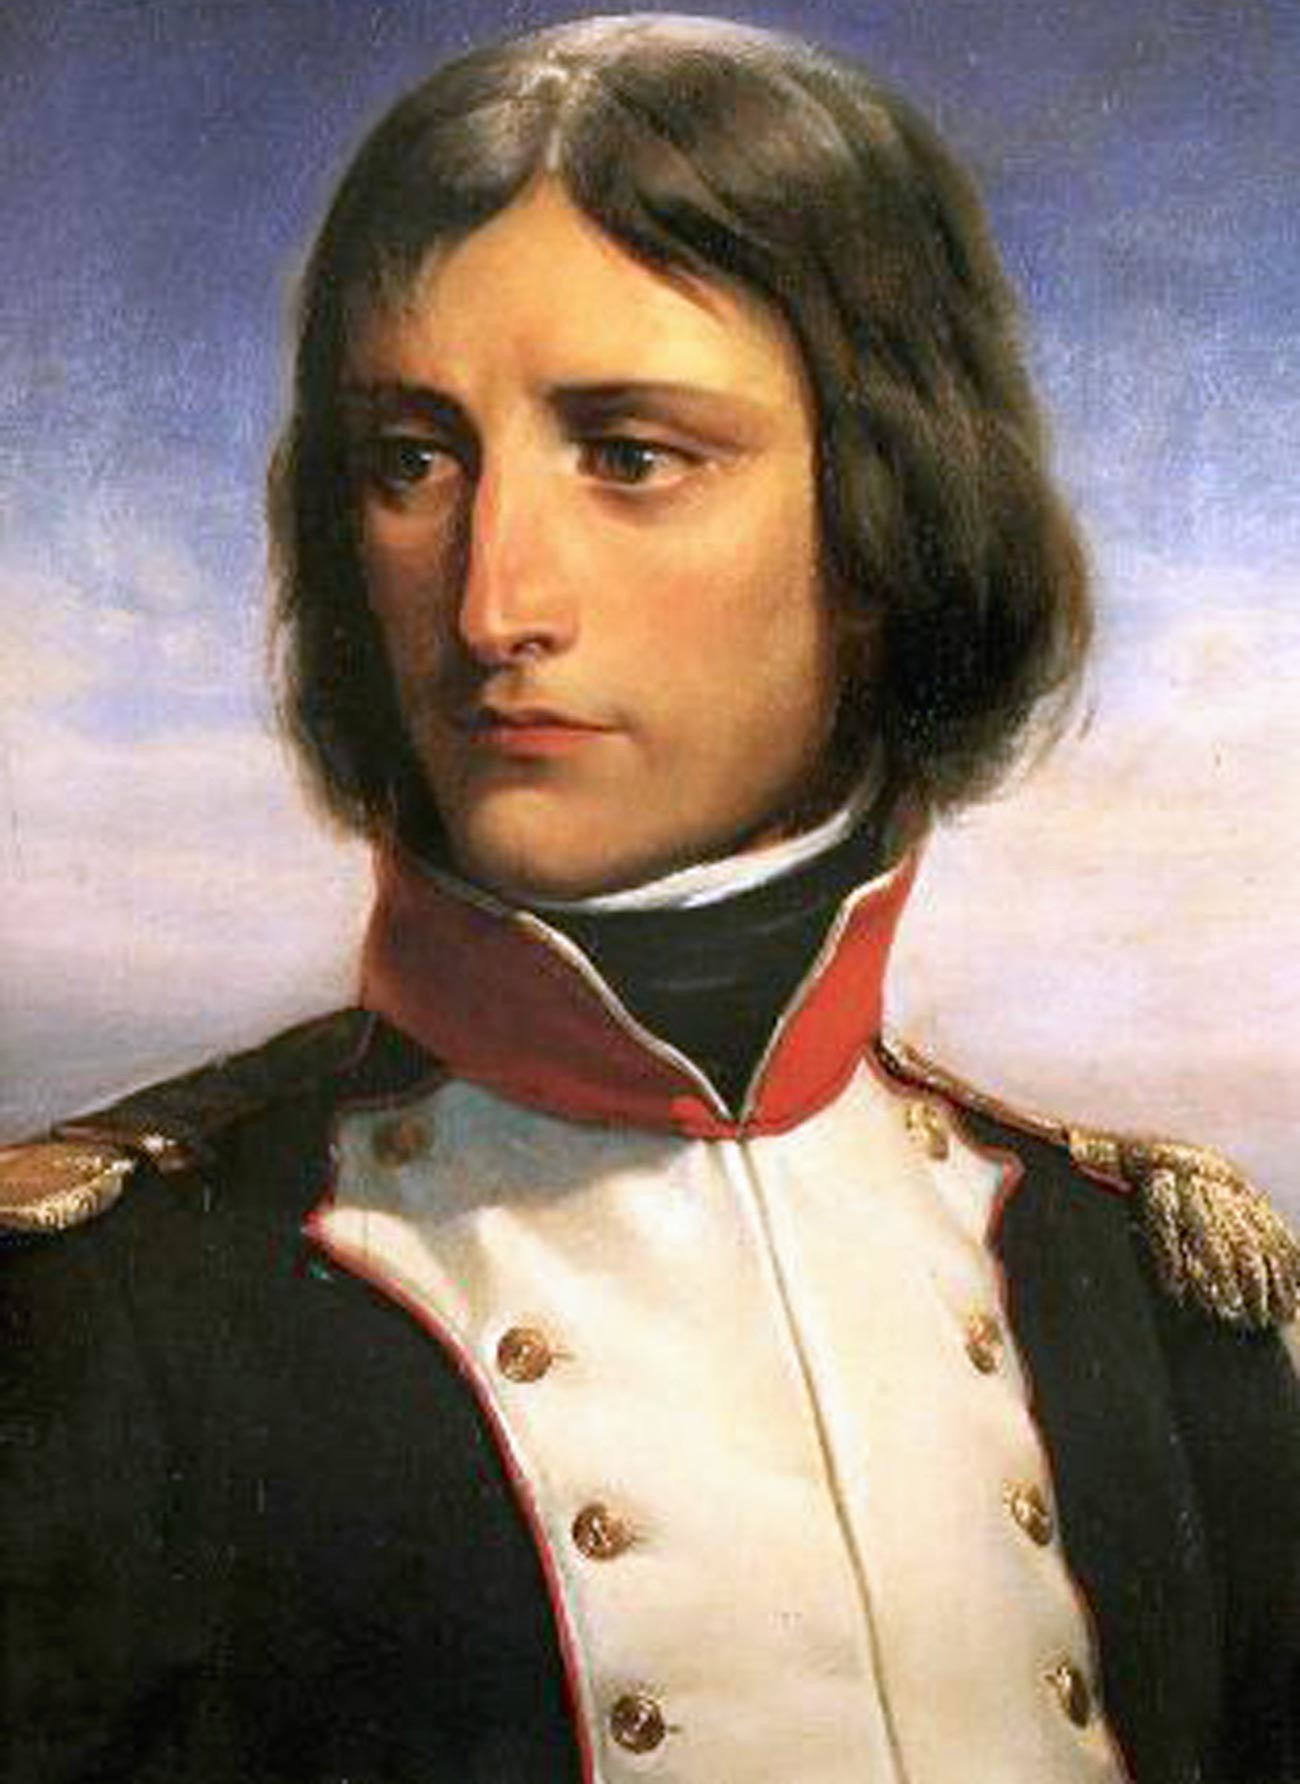 Napoléon Bonaparte in 1792, Lieutenant Colonel of the 1st Battalion of the French National Guard